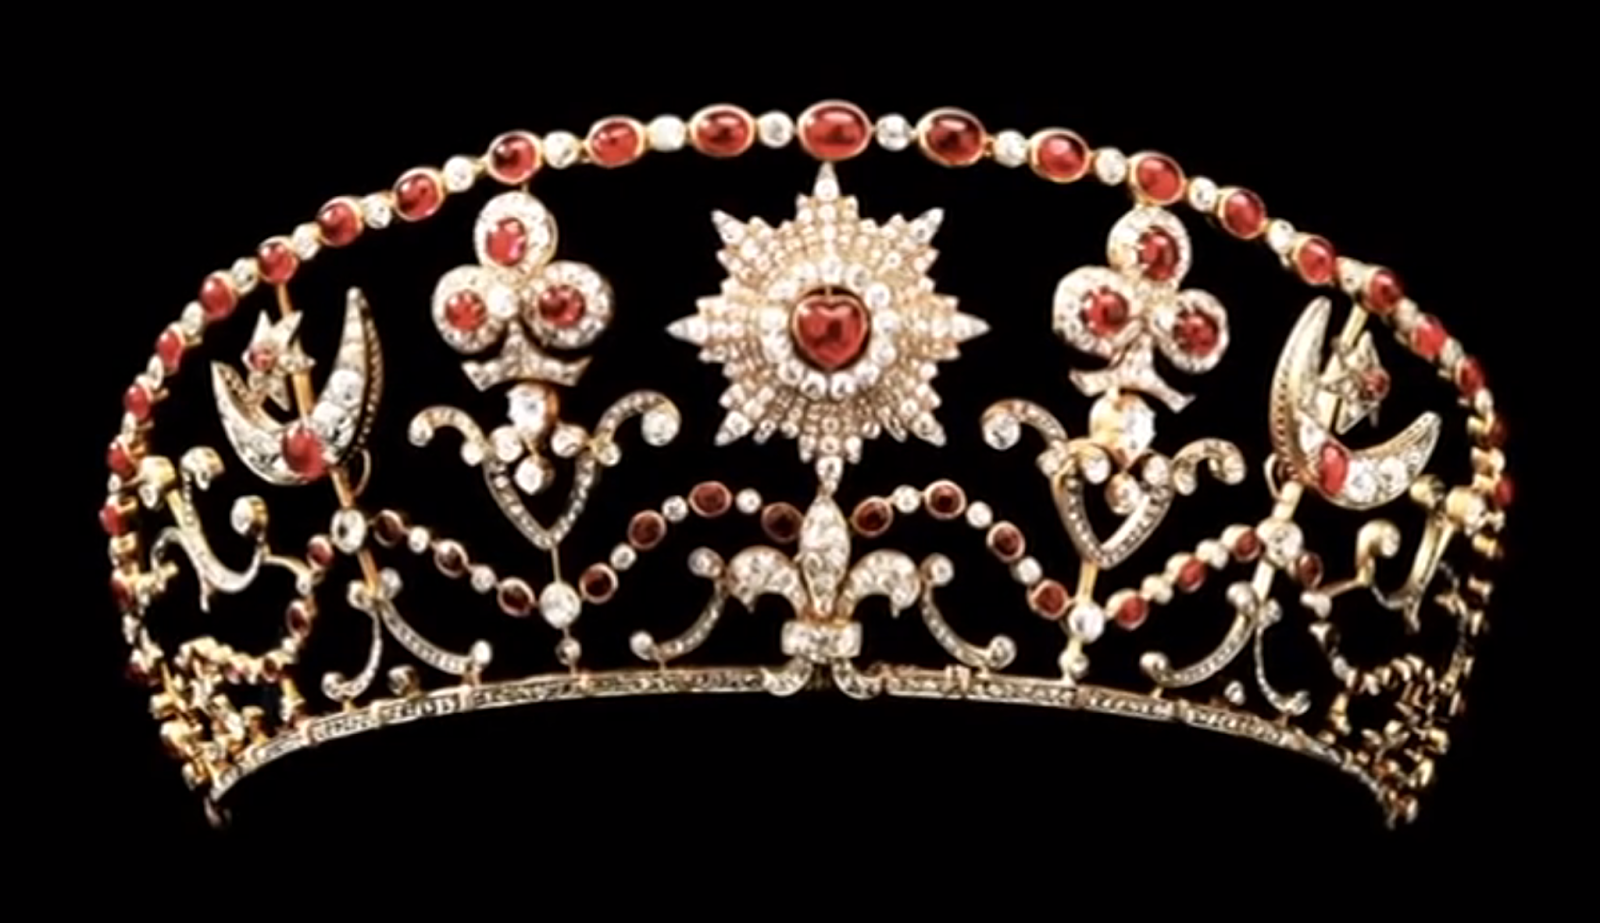 marie poutines jewels amp royals russian imperial jewels